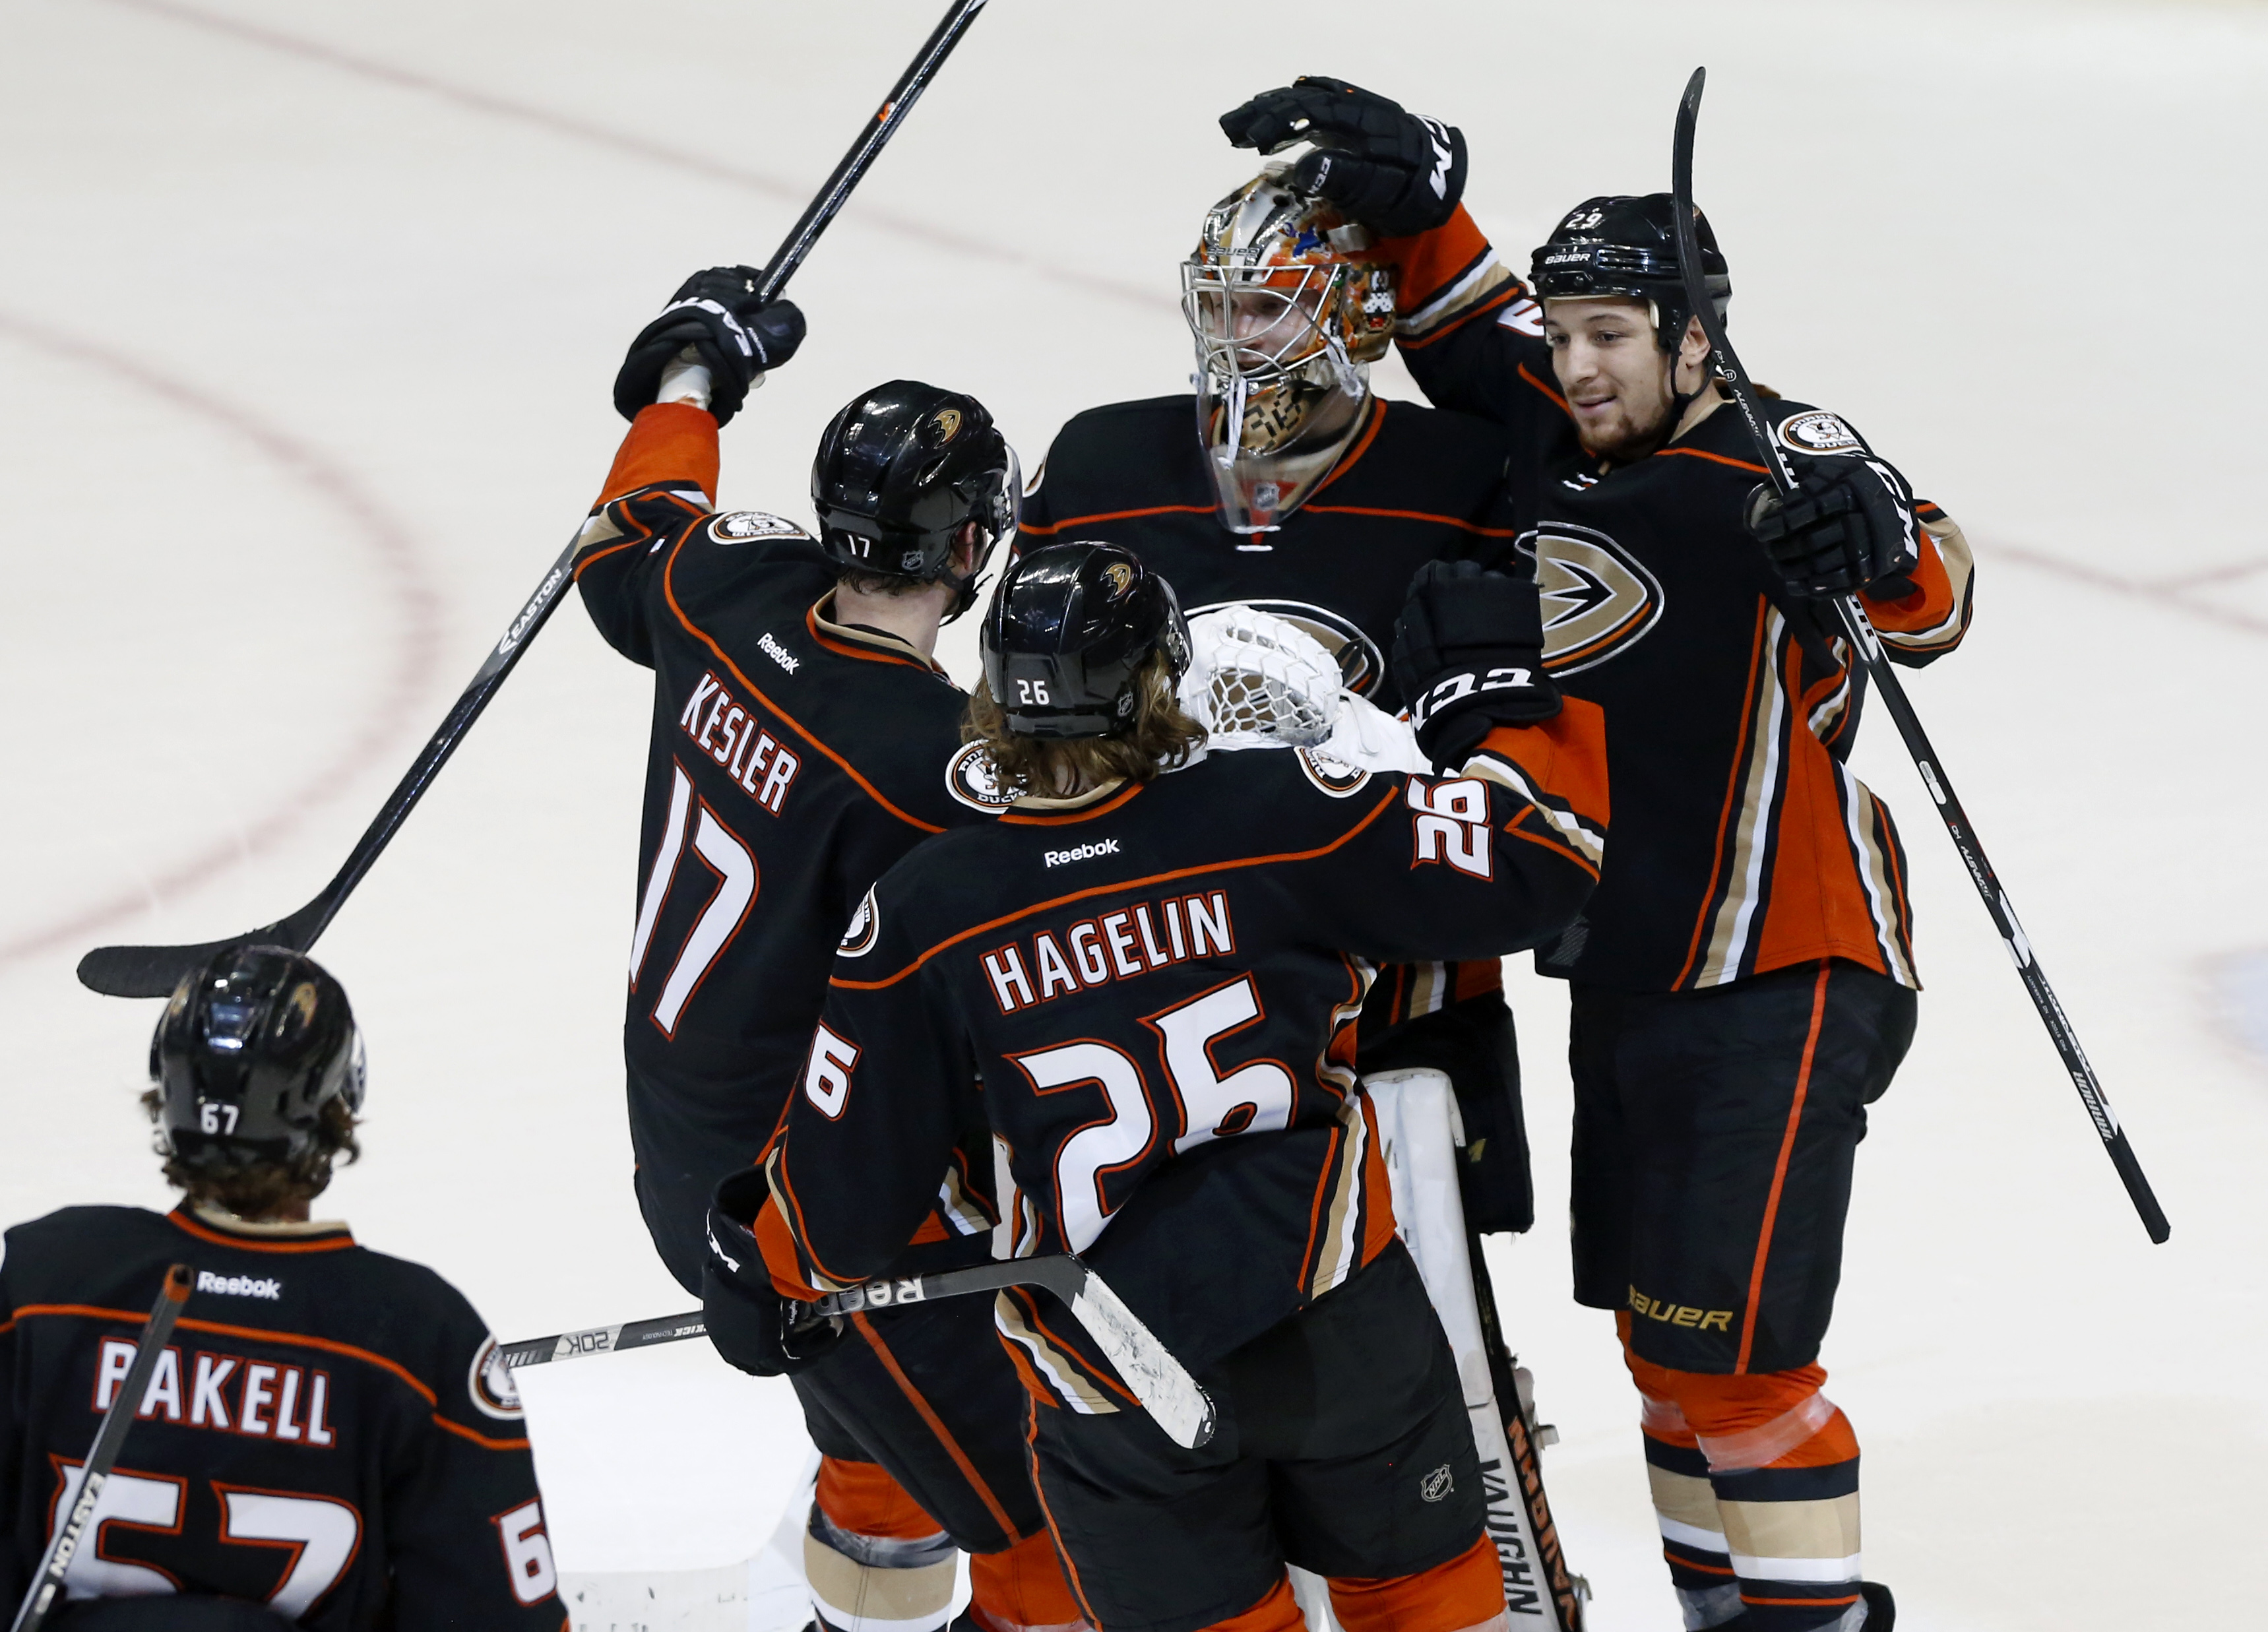 Anaheim Ducks goalie John Gibson and teammates Ryan Kesler (17), Carl Hagelin (26), and Chris Stewart (29) celebrate a 4-3 victory over the St. Louis Blues, after the shootout in the NHL hockey game in Anaheim, Calif., Friday, Jan. 8, 2016. (AP Photo/Chri